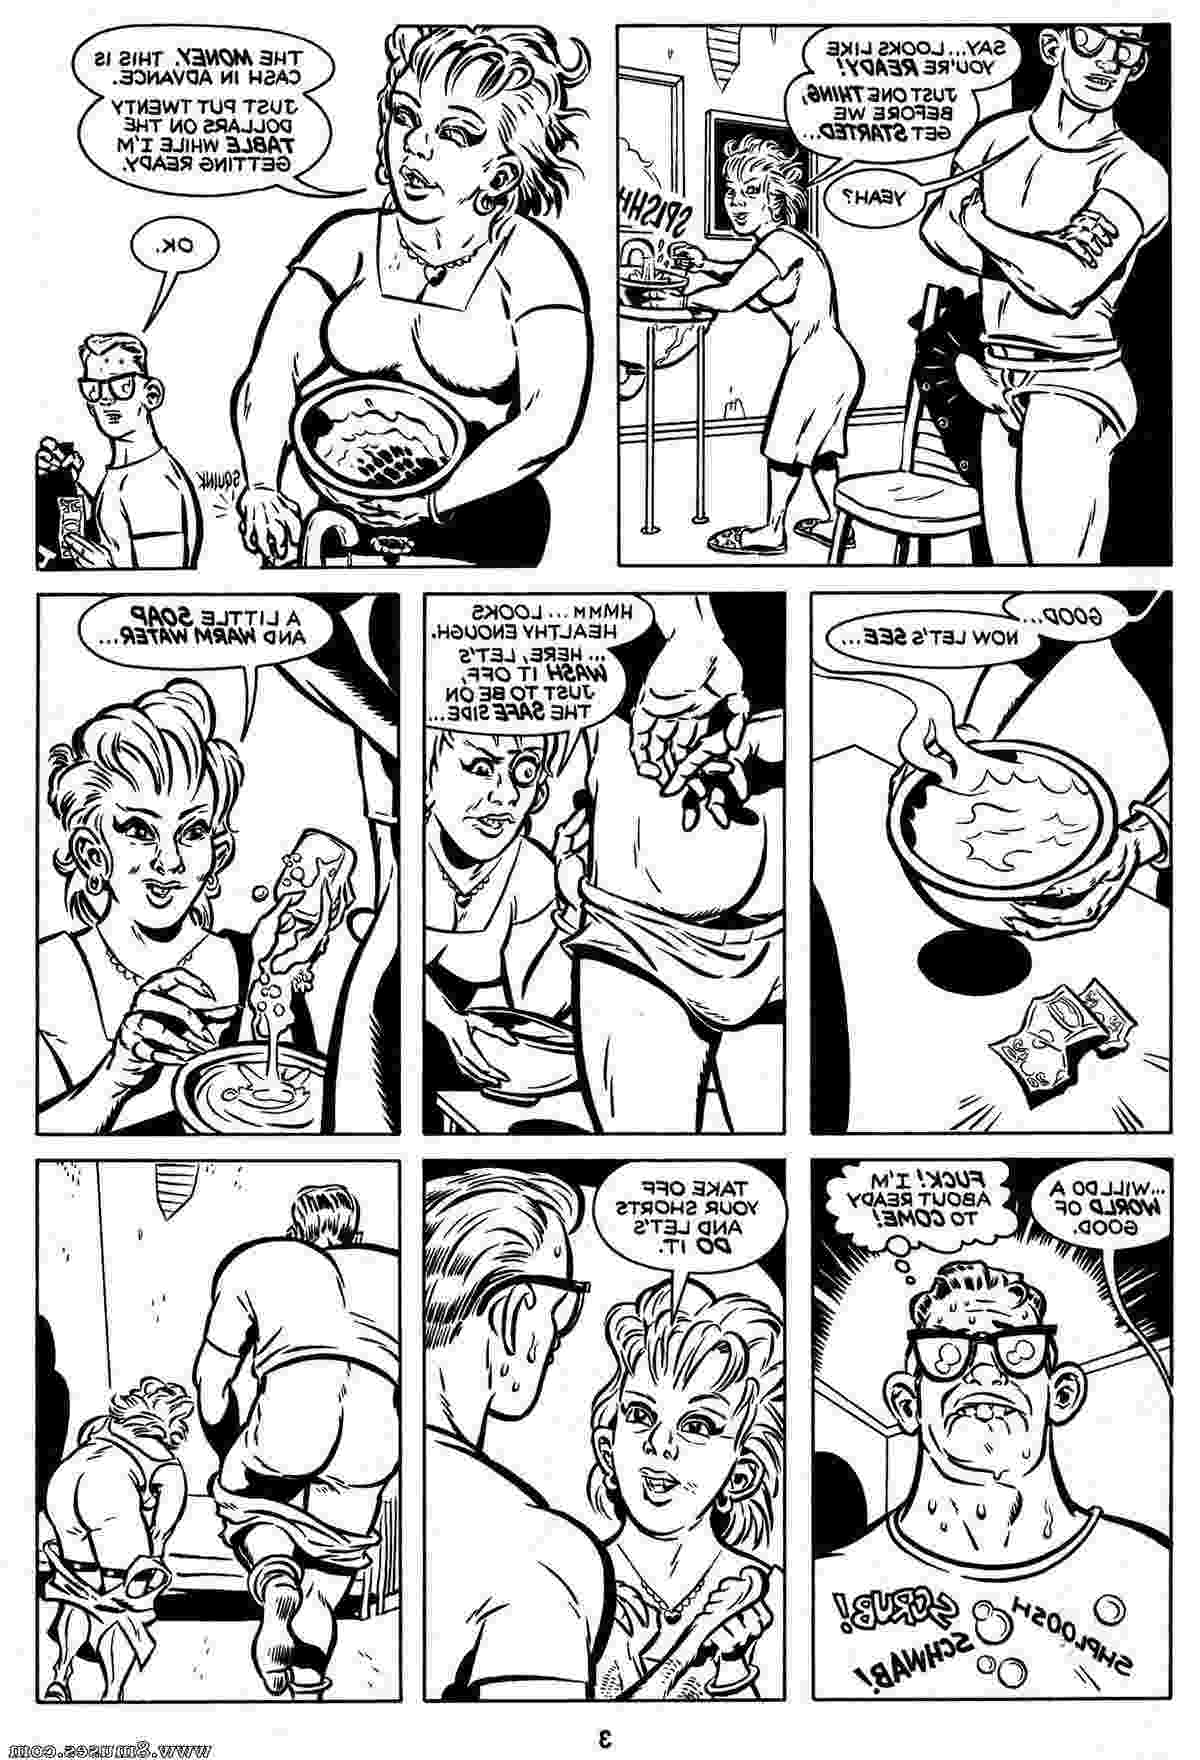 EROS-Comics/Real-Smut Real_Smut__8muses_-_Sex_and_Porn_Comics_5.jpg